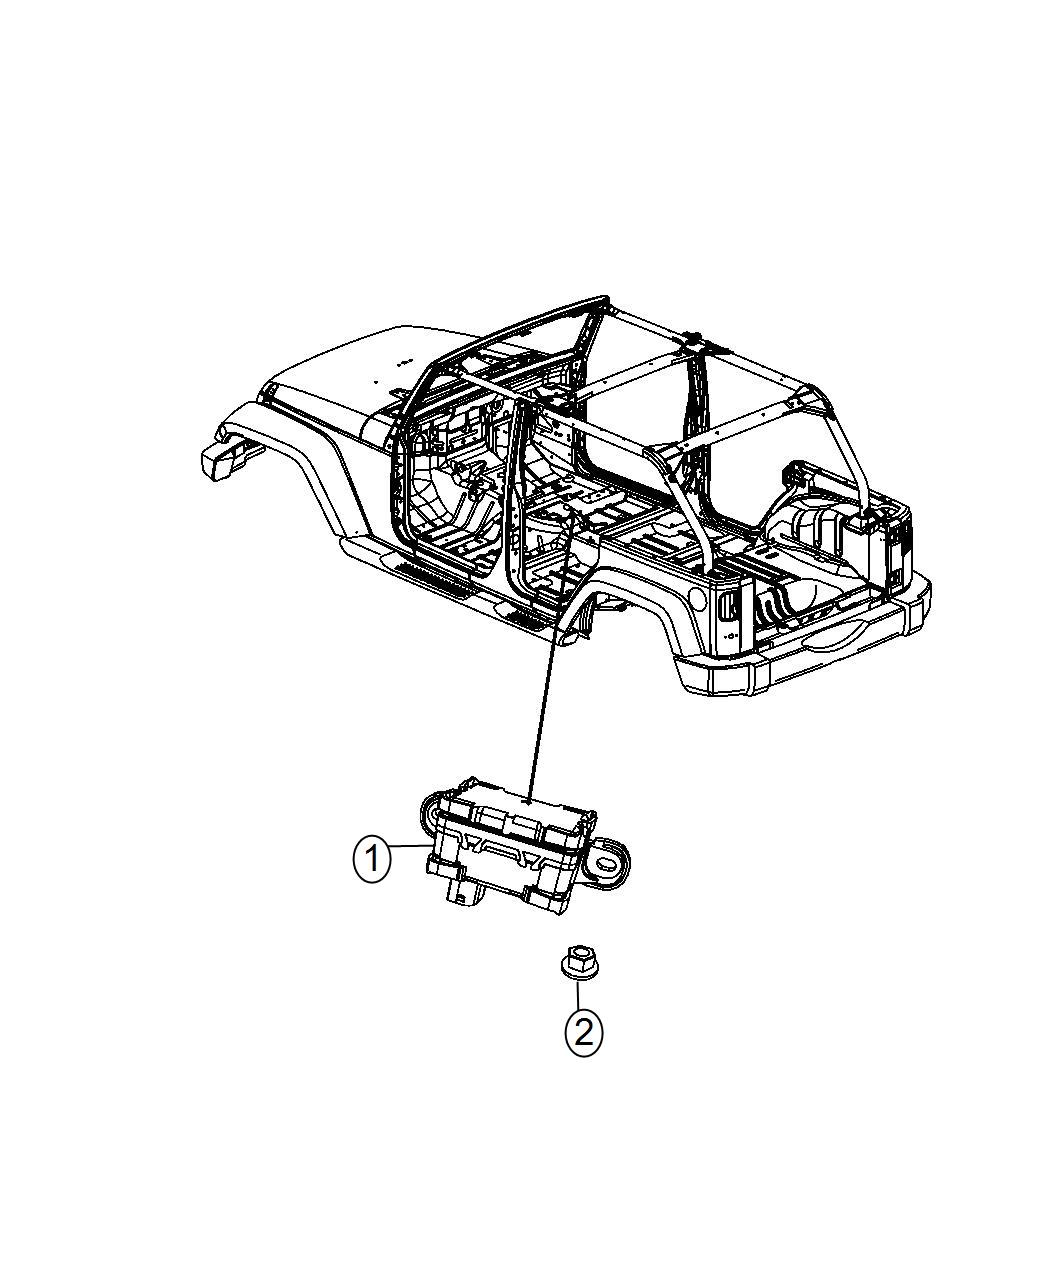 2014 jeep wrangler sensor  dynamics  used for  lateral